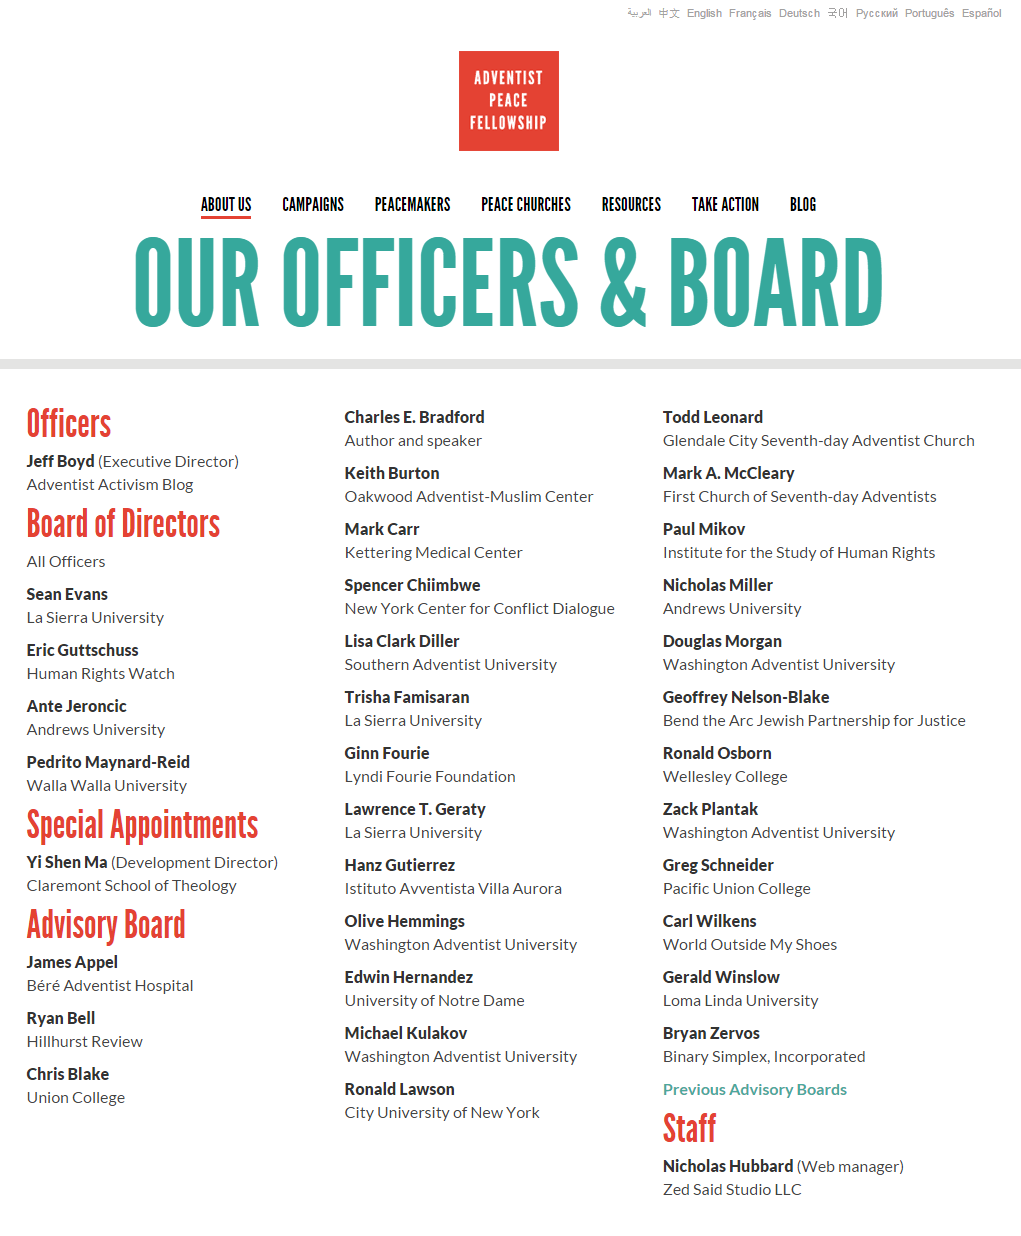 Adventist Peace Fellowship Officers & Board.png